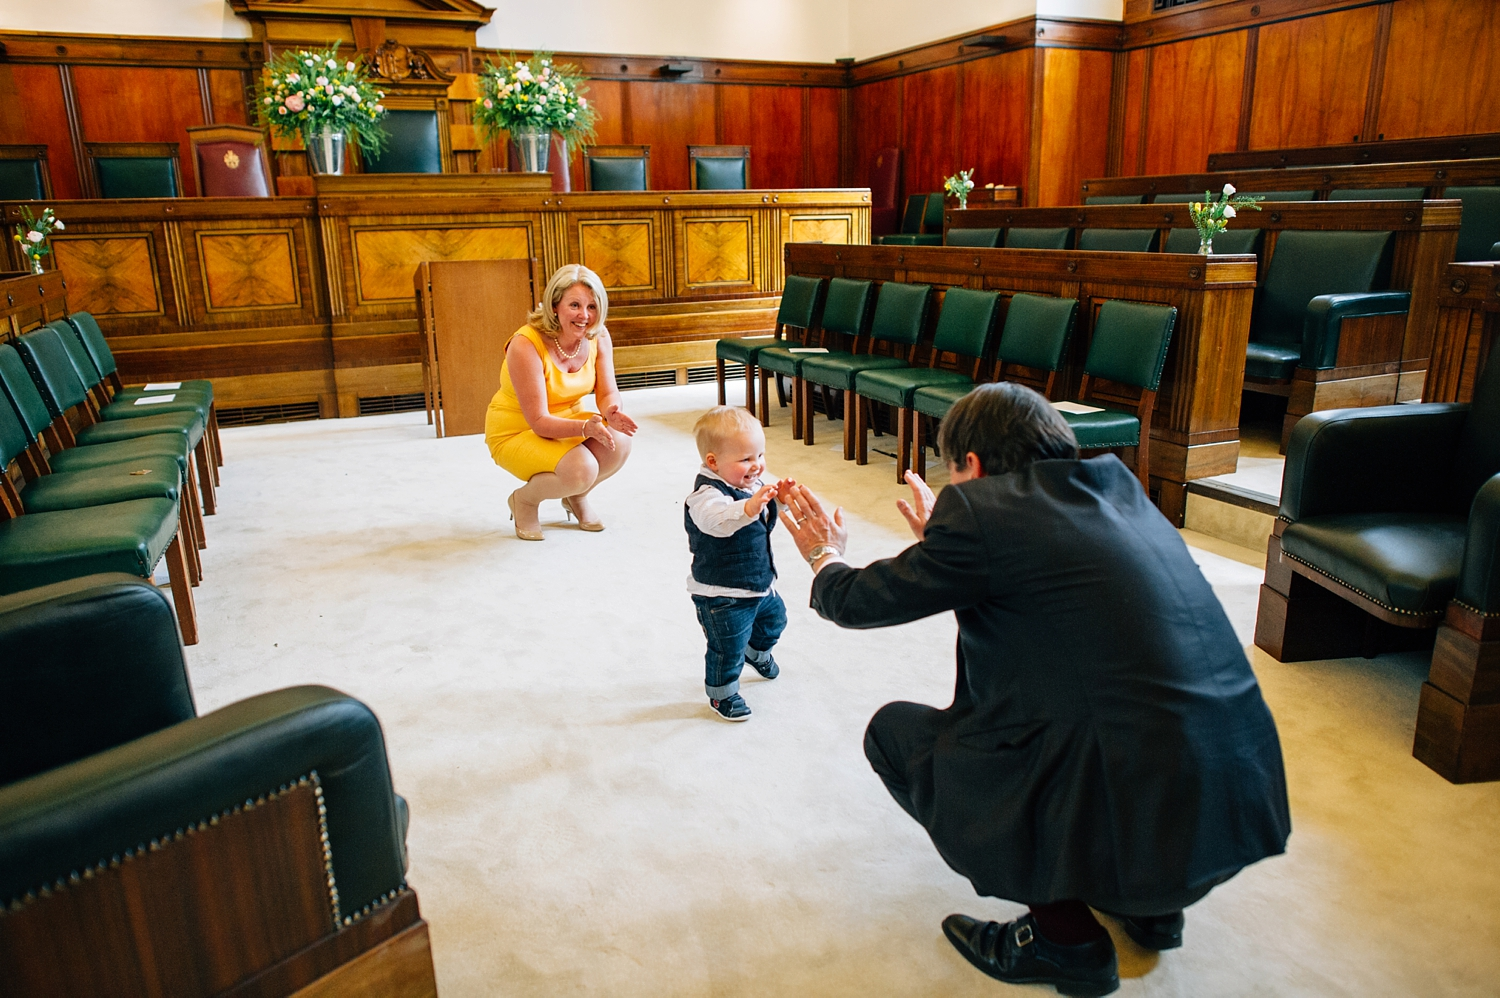 0073-lisa-devine-alternative-wedding-photography-london-hackney-dalston-london-photography-townhall-hotel.JPG